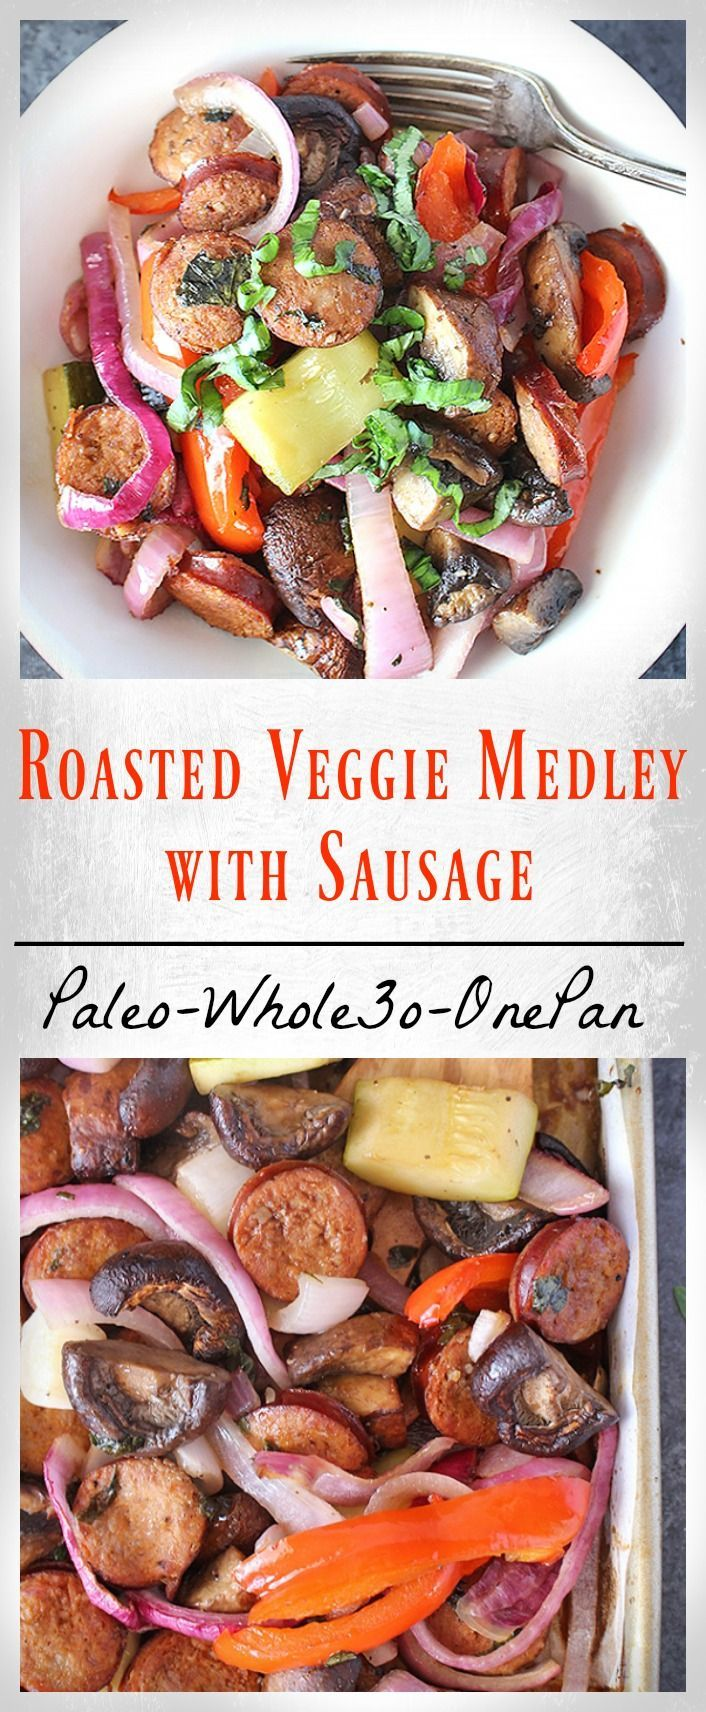 Roasted Vegetable Medley with Sausage- Whole30, Paleo, and so delicious! Made on one pan and ready in 30 minutes. Vegetable Medley with Sausage- Whole30, Paleo, and so delicious! Made on one pan and ready in 30 minutes.